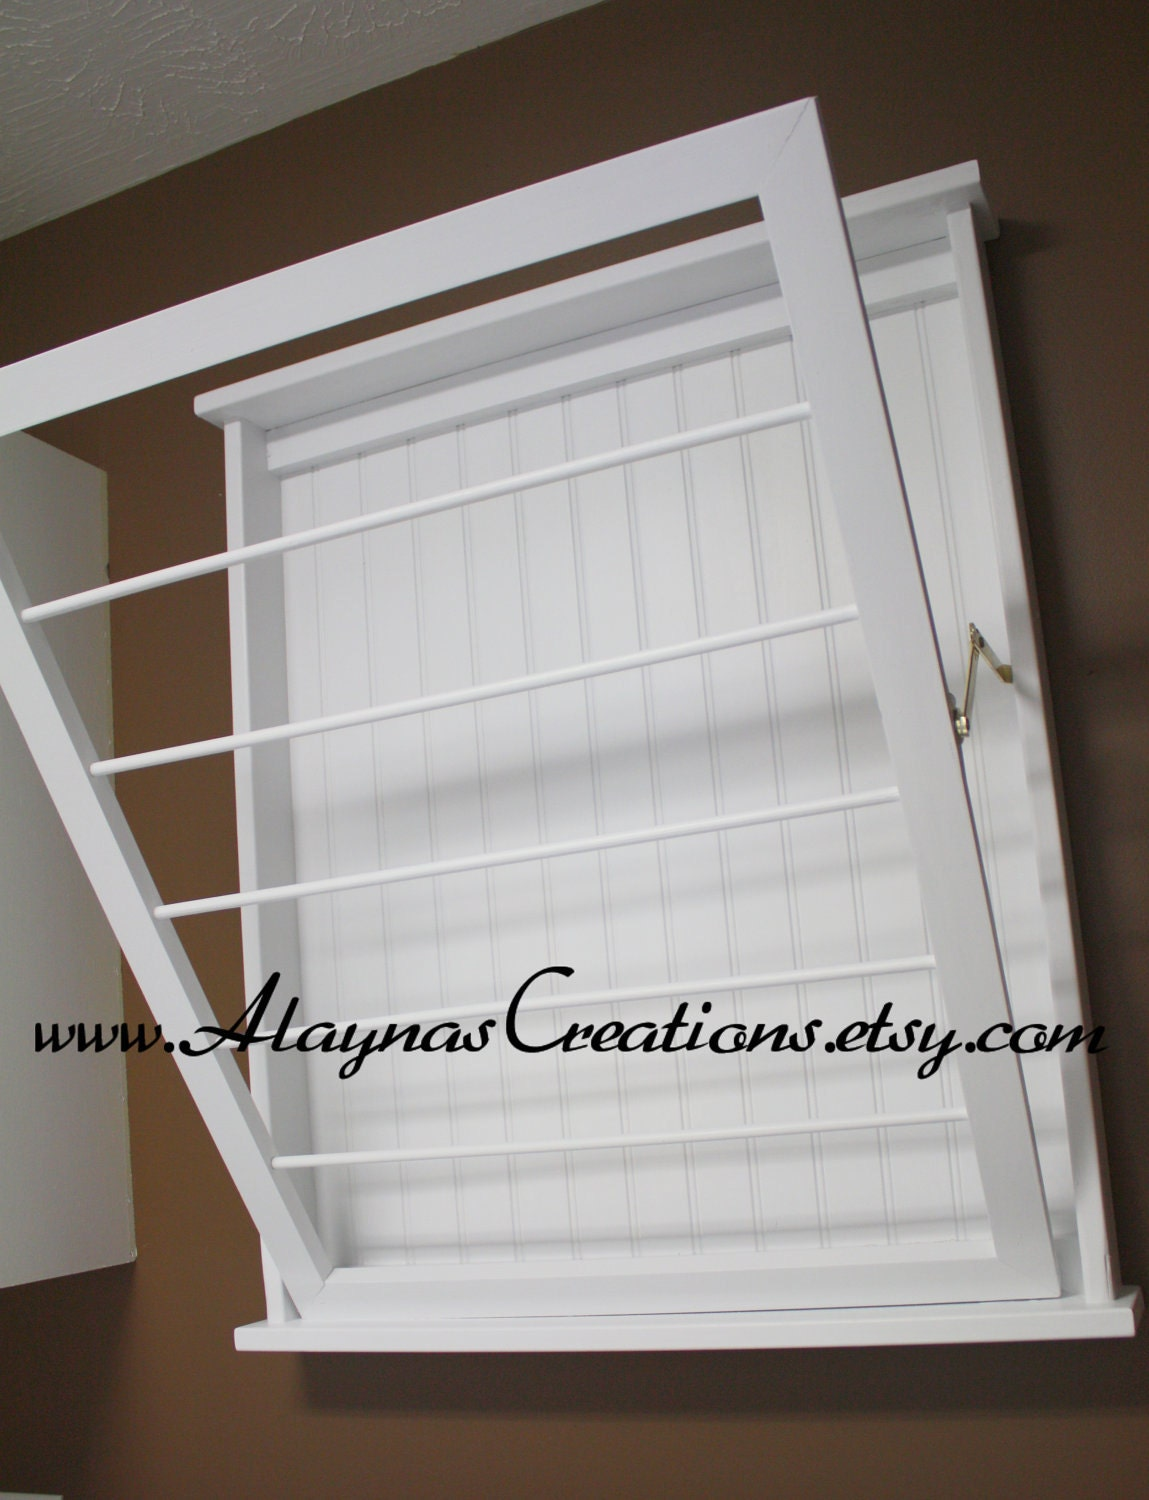 Clothes dryer rack lidl